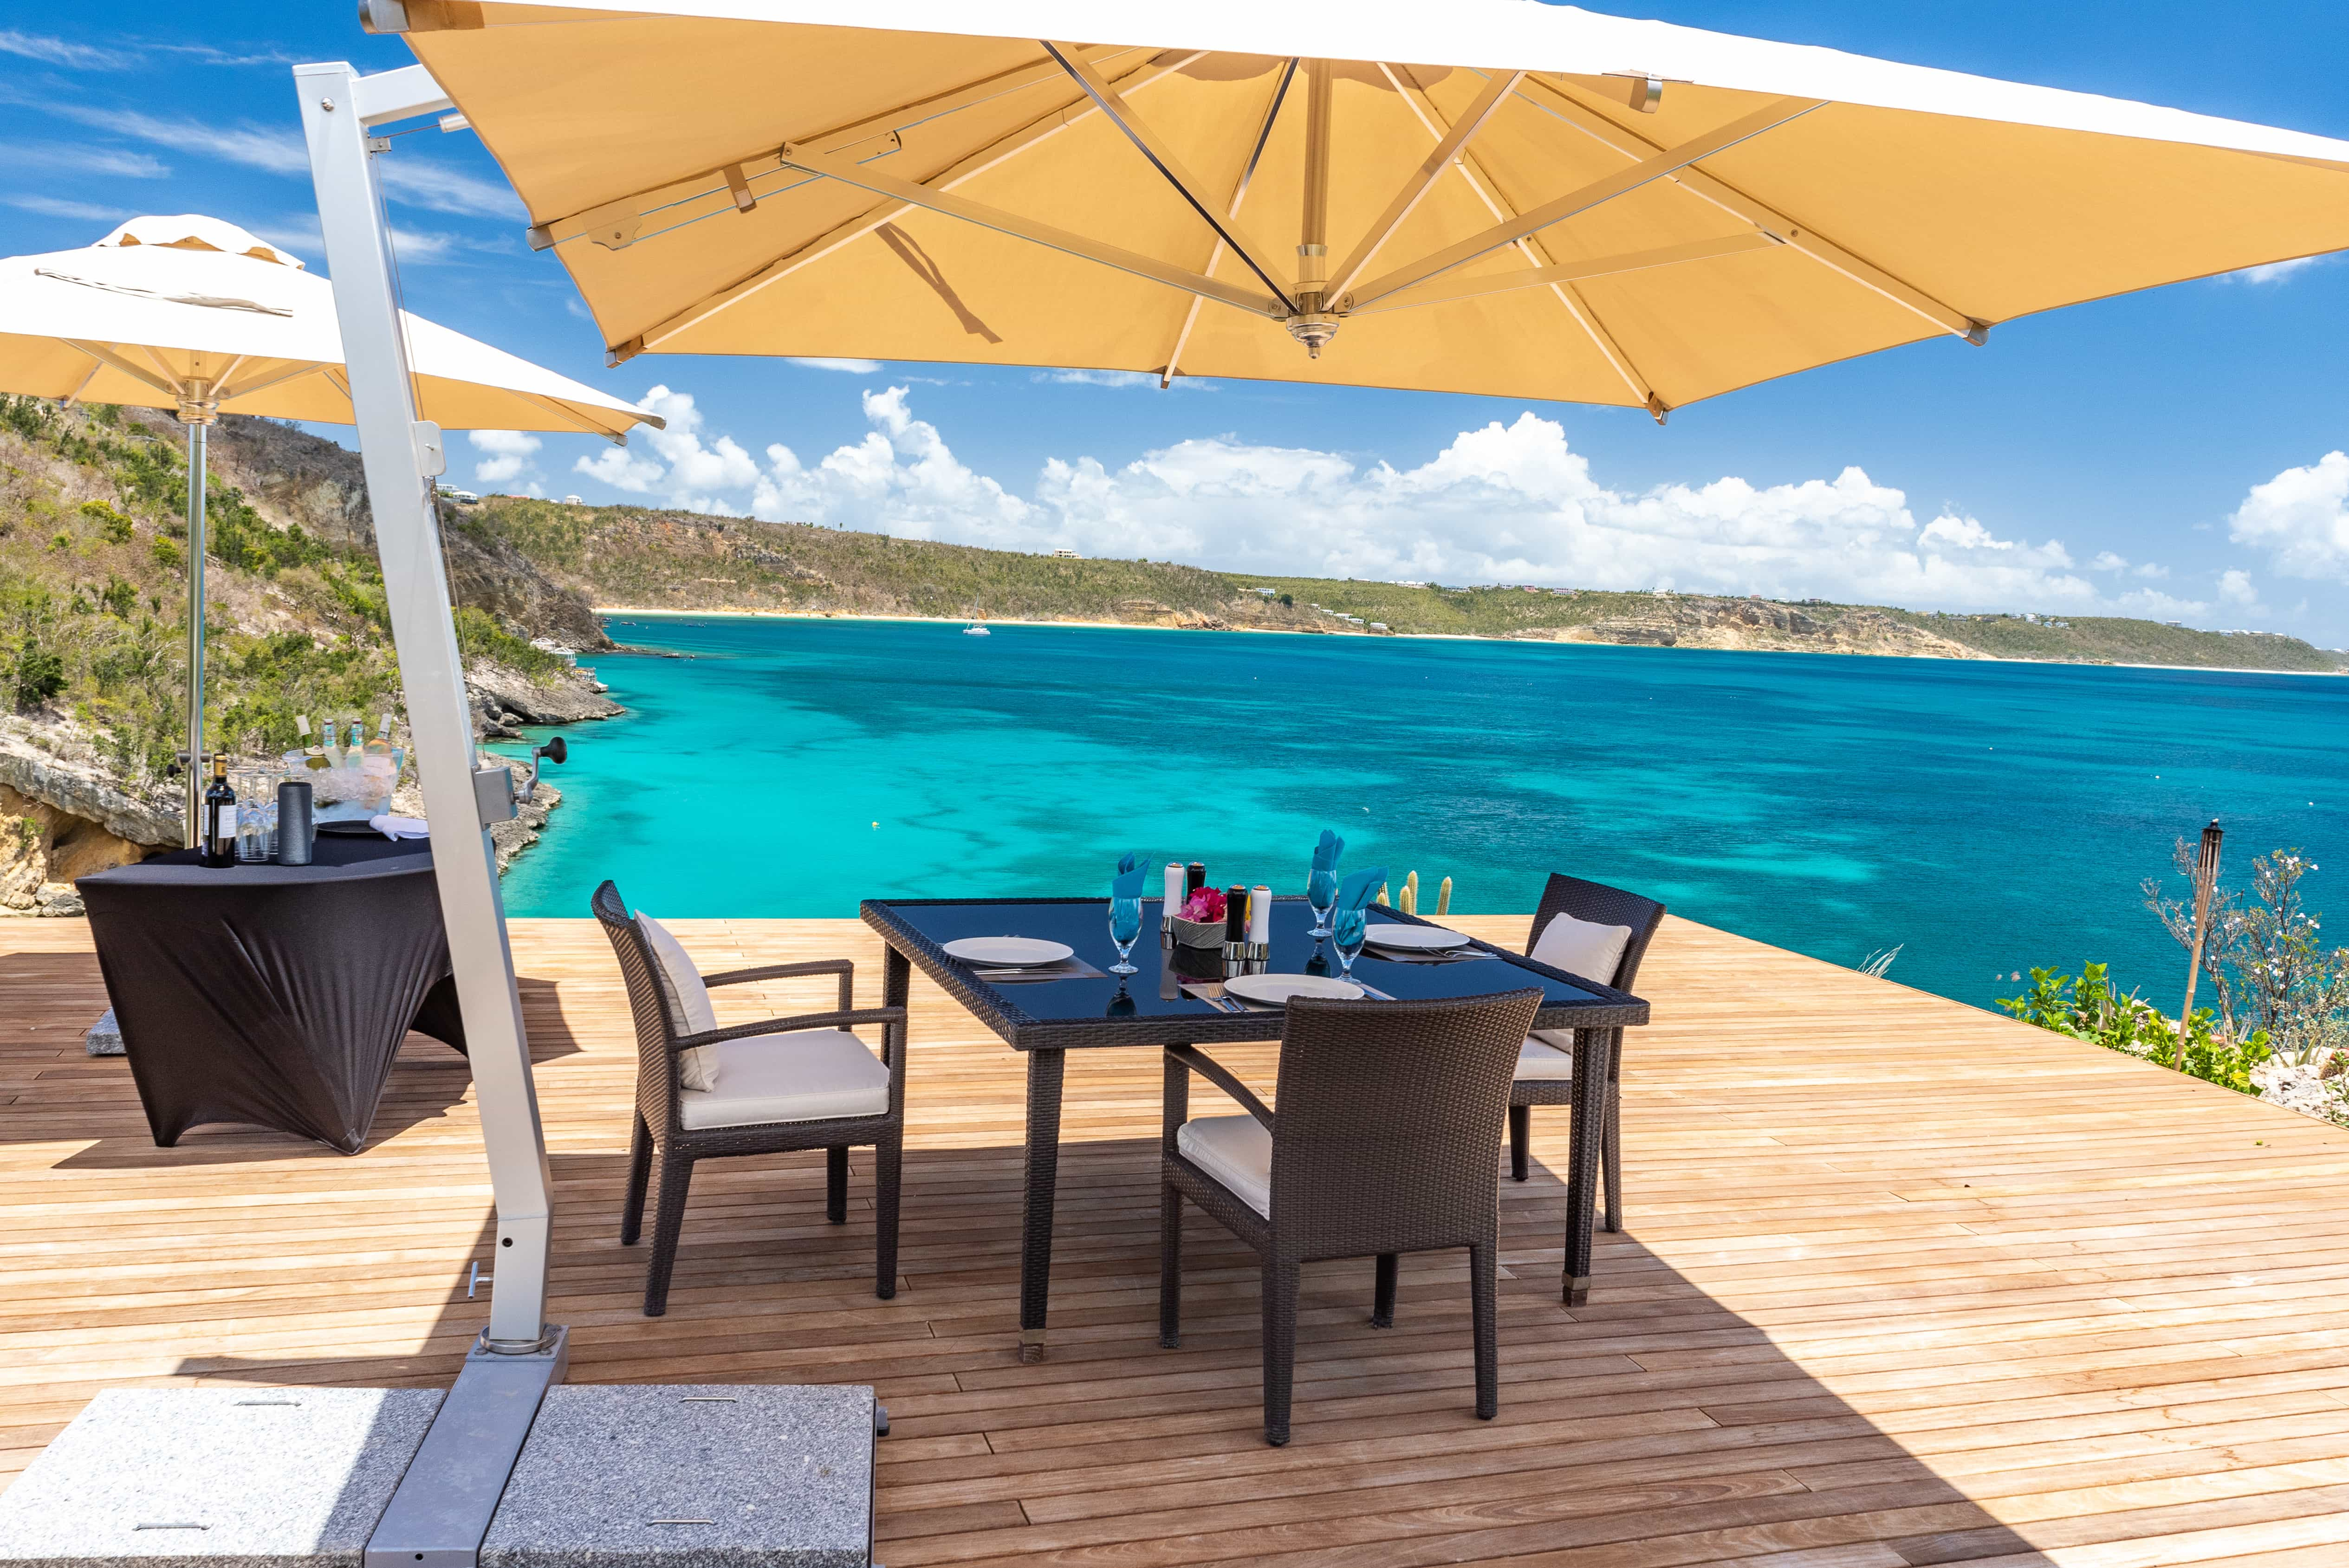 Dine at your leisure and at the location of your choice —anywhere on island or even neighboring islands.